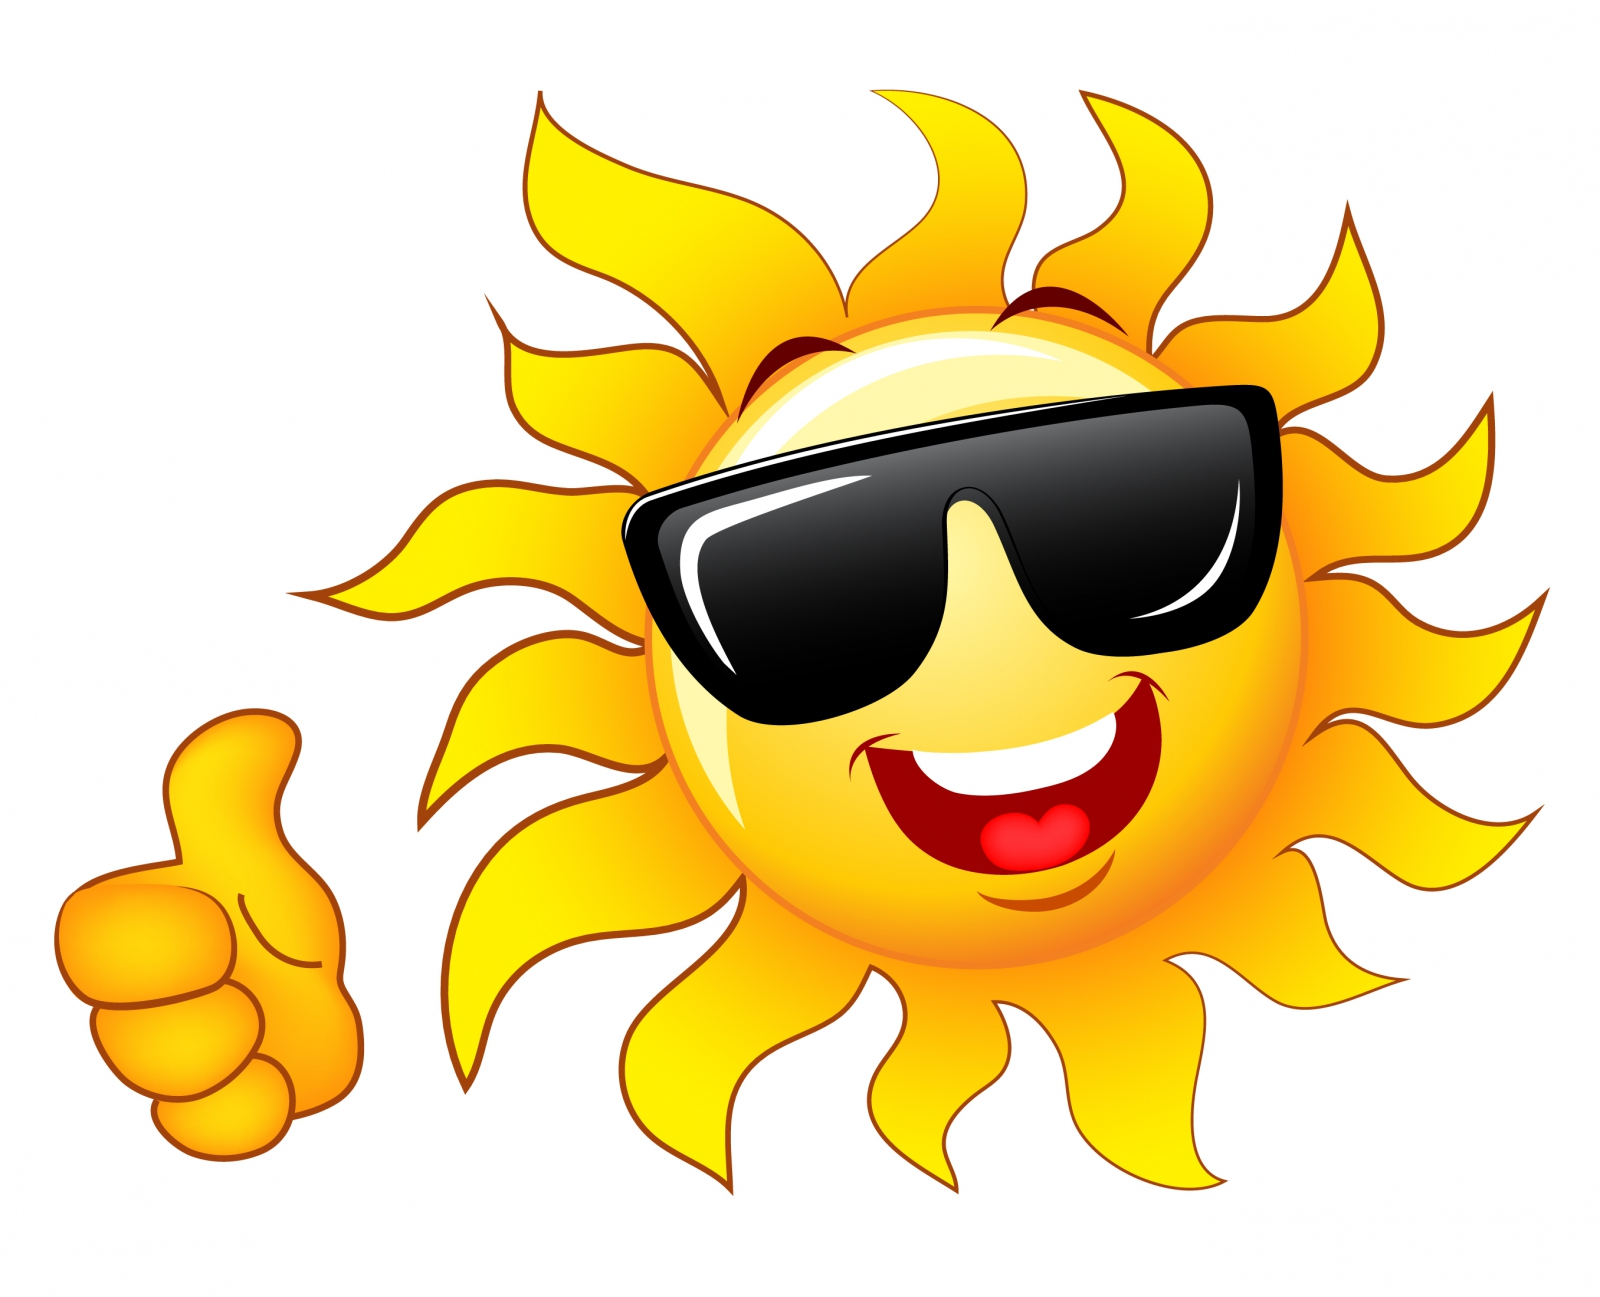 Smiling sun with sunglasses clipart